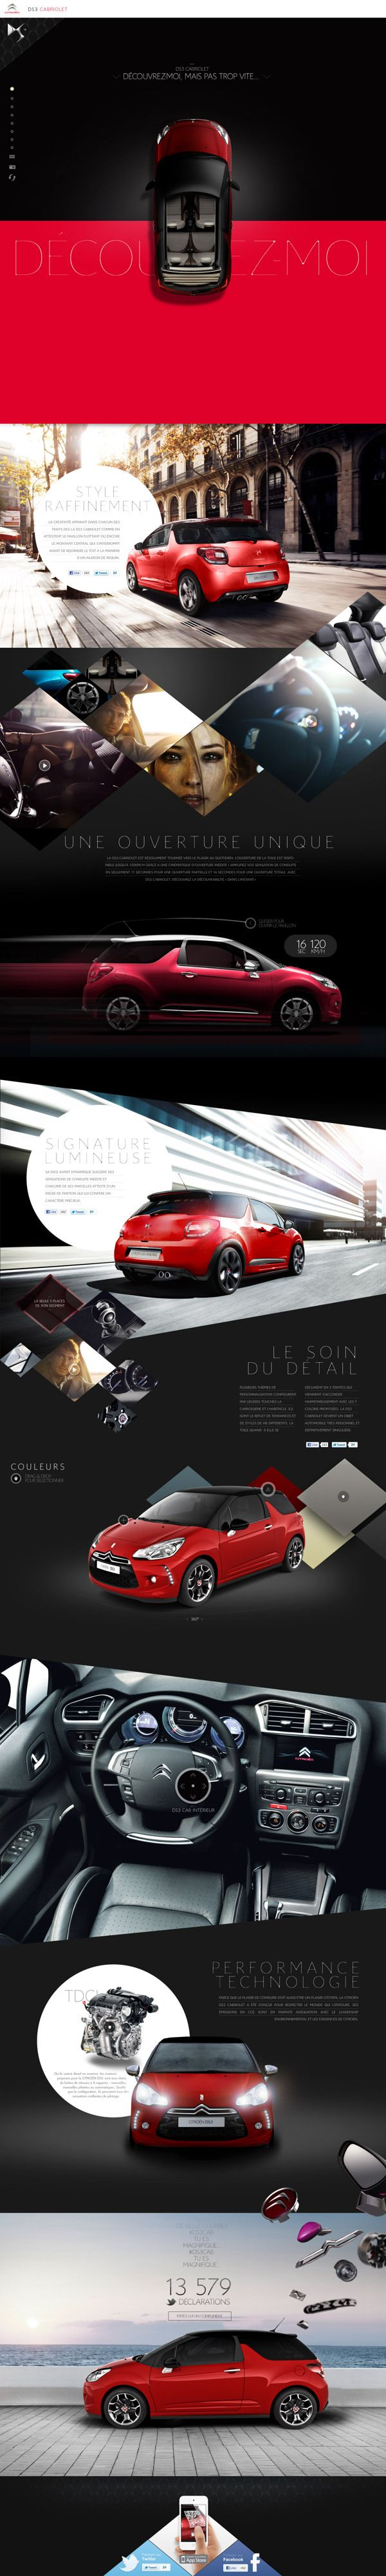 Citroen DS3 Cab by Sylvain Weiss, via Behance - powerful color palette great art direction | #it #web #design #layout #userinterface #website #webdesign <<< repinned by www.BlickeDeeler.de Follow us on www.facebook.com/BlickeDeeler